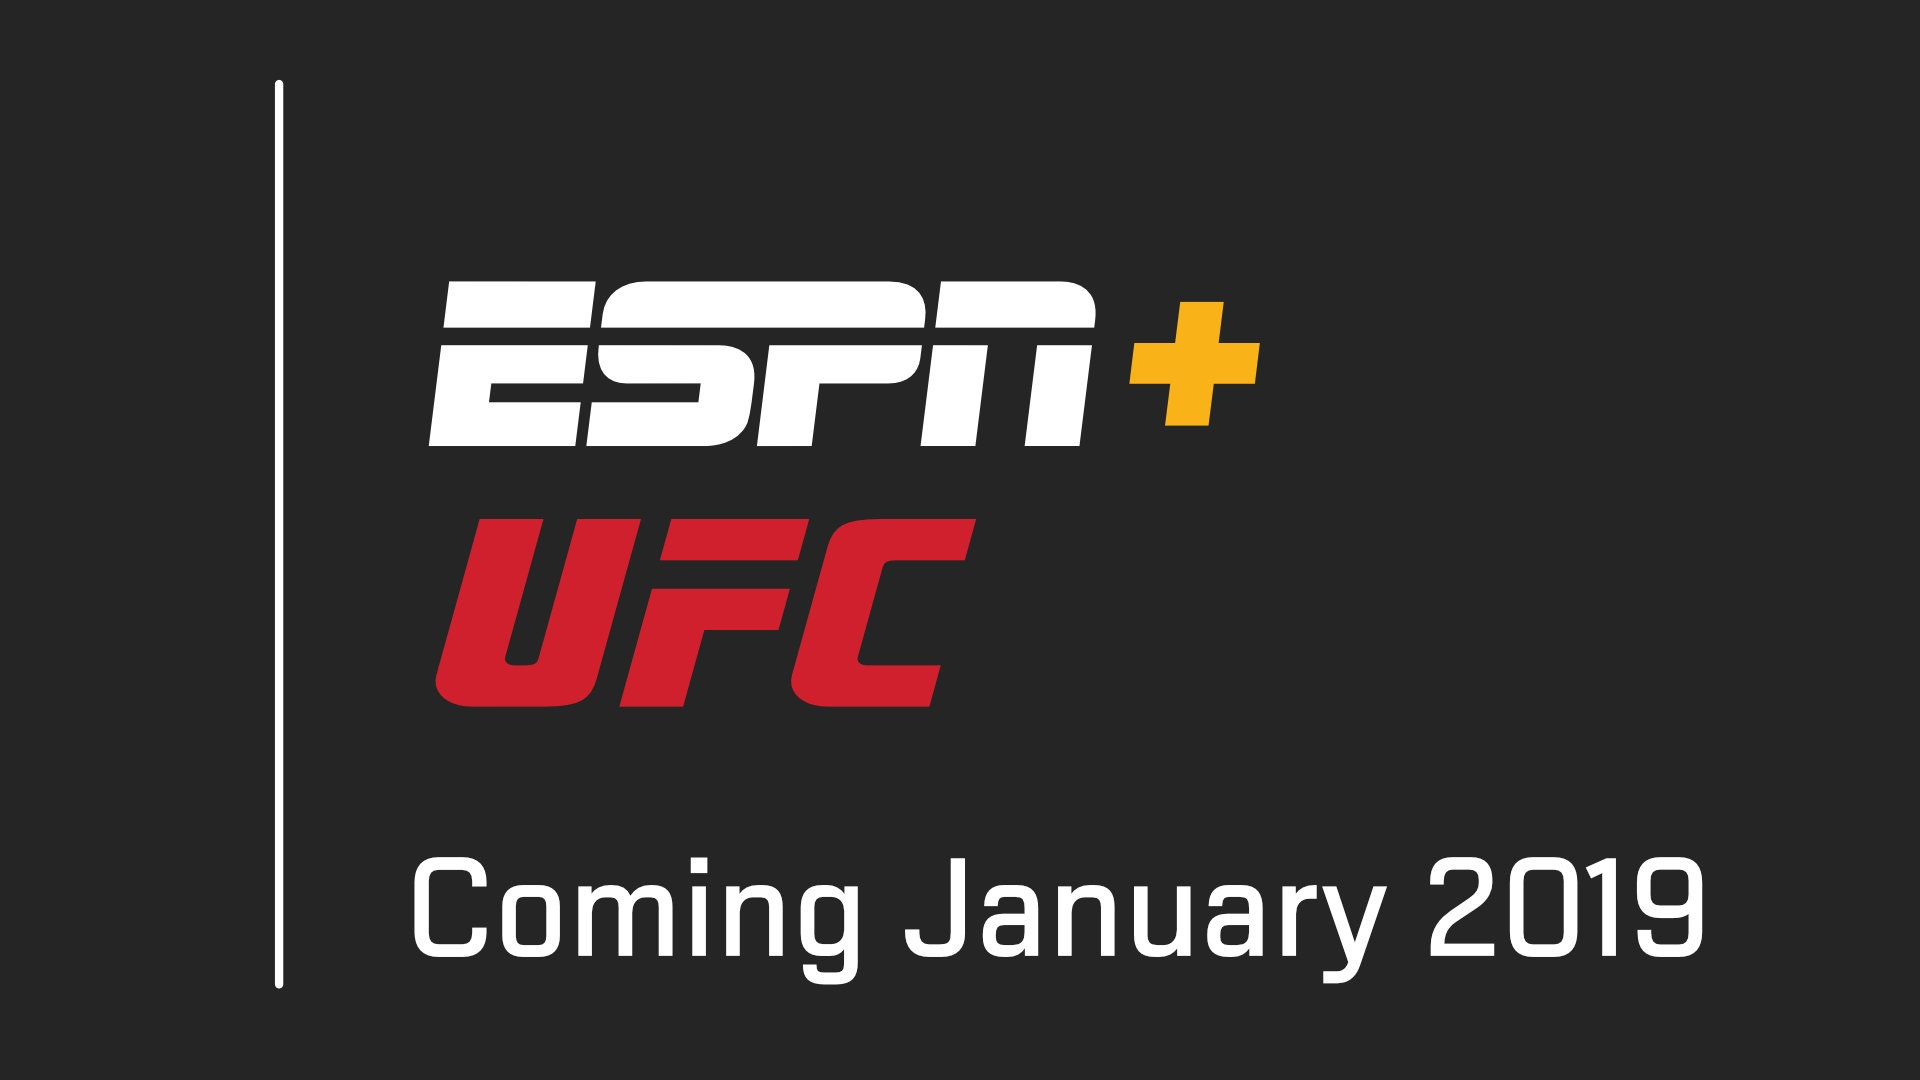 UFC reaches groundbreaking deal with Walt Disney Company and